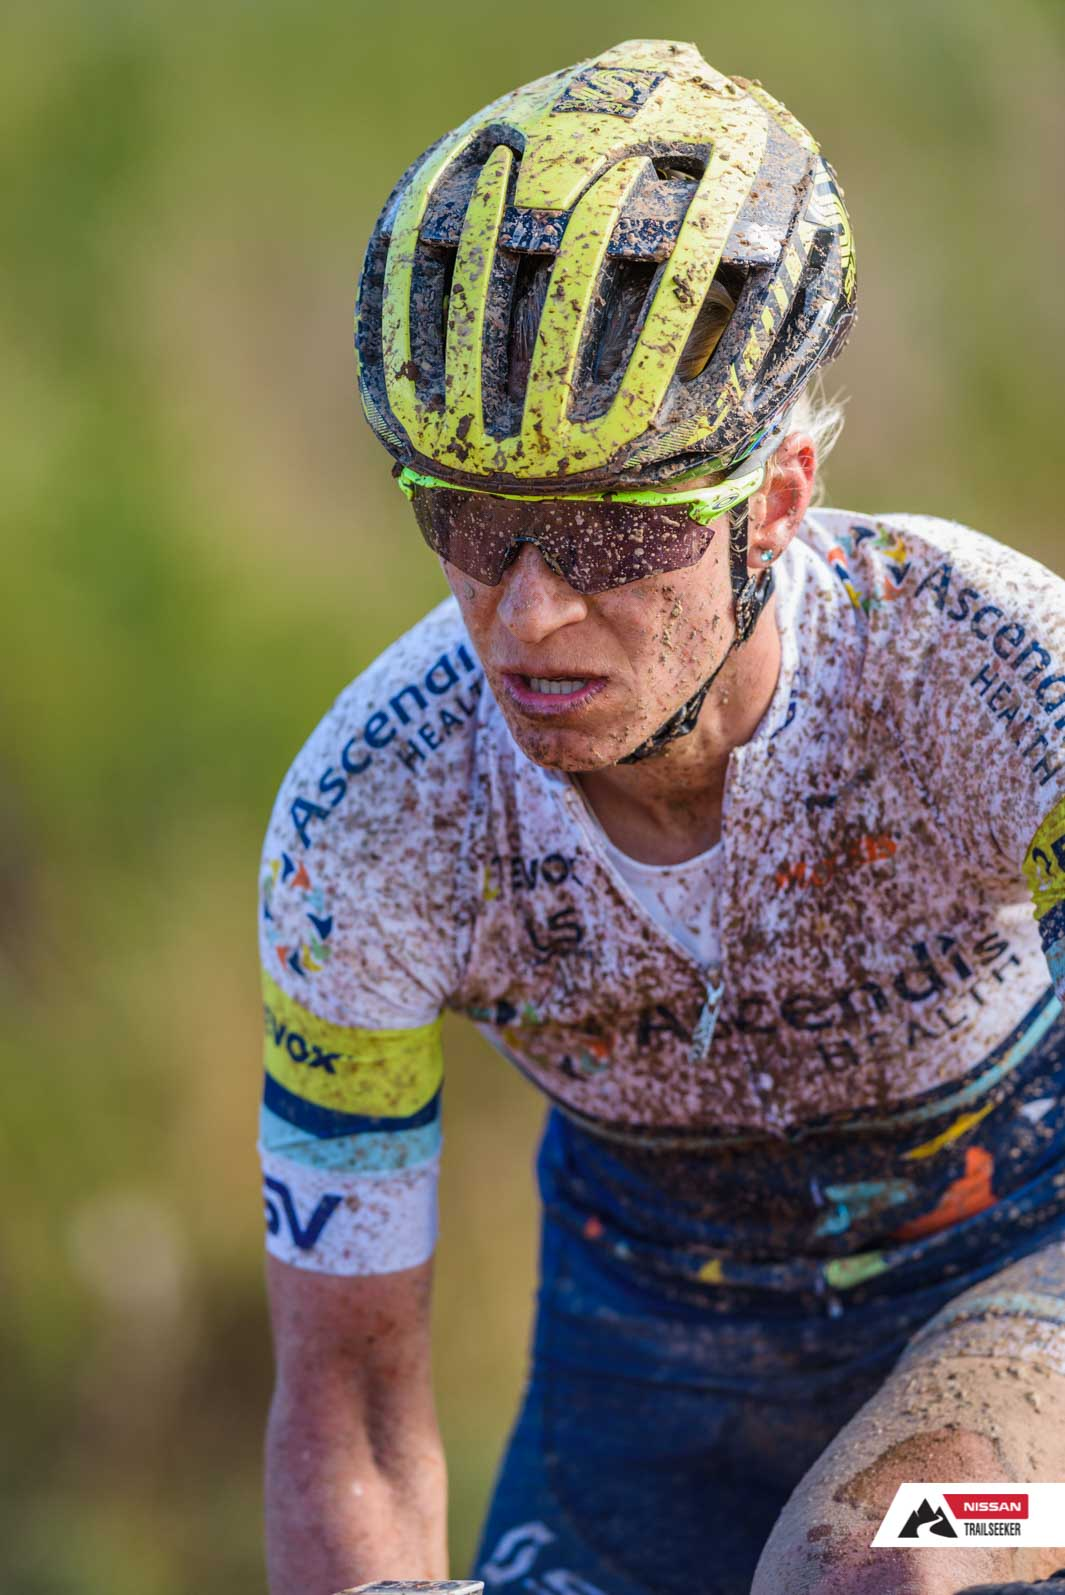 Multiple champion Robyn de Groot (Ascendis Health) won the Elite Women's race at the recent 2018 SA Mountain Bike Marathon Championships on 14 July, winning the epic battle over the 90-kilometre ultra-marathon course in a time of 03:58:47.